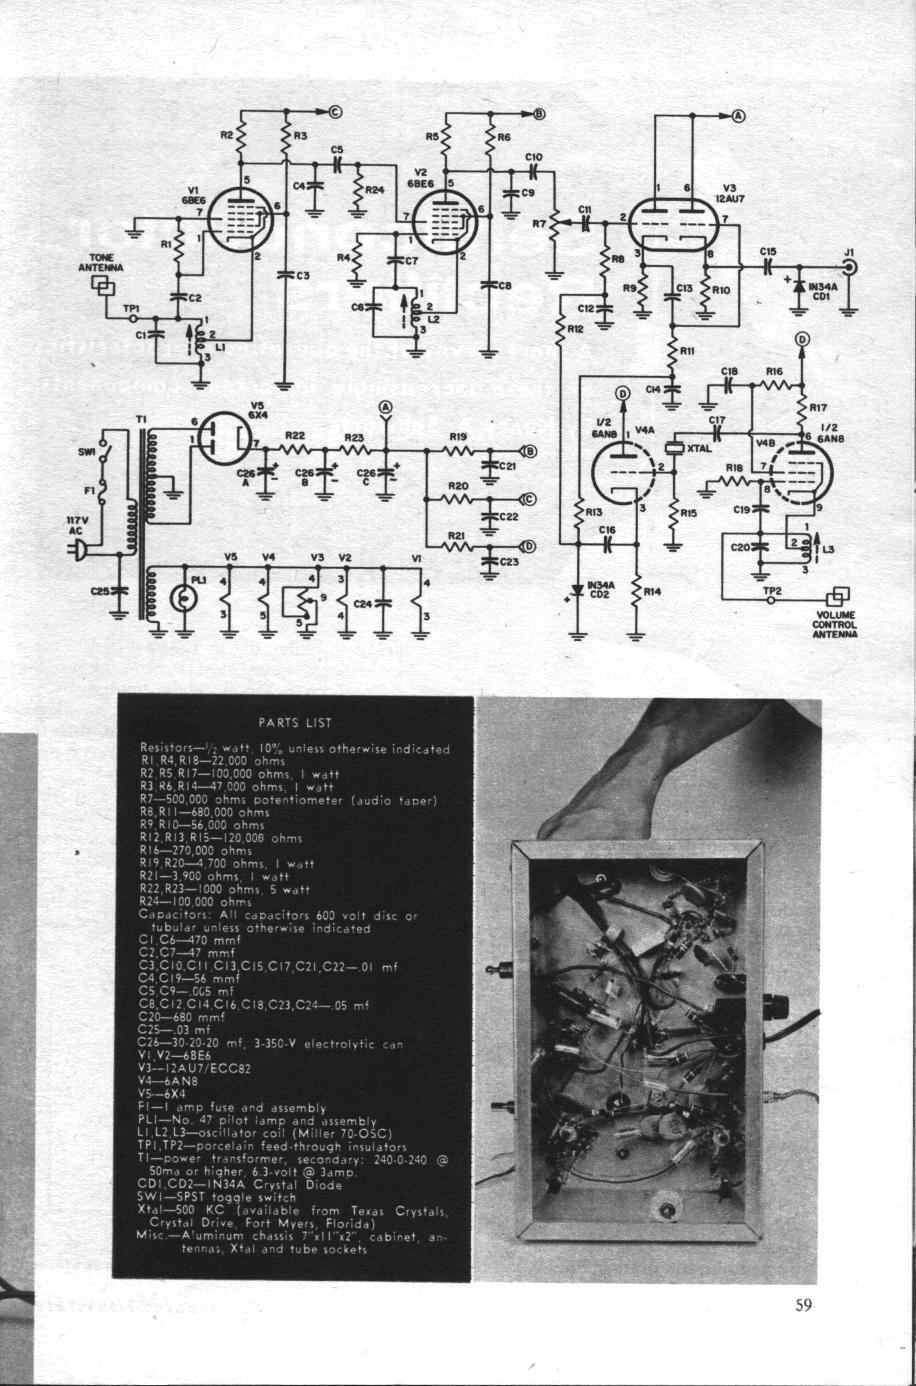 Electronics Illustrated Magazine January 1961 Simple Theremin This Issue Of Includes A Construction Article For Tube Powered Theremins Were Invented In The